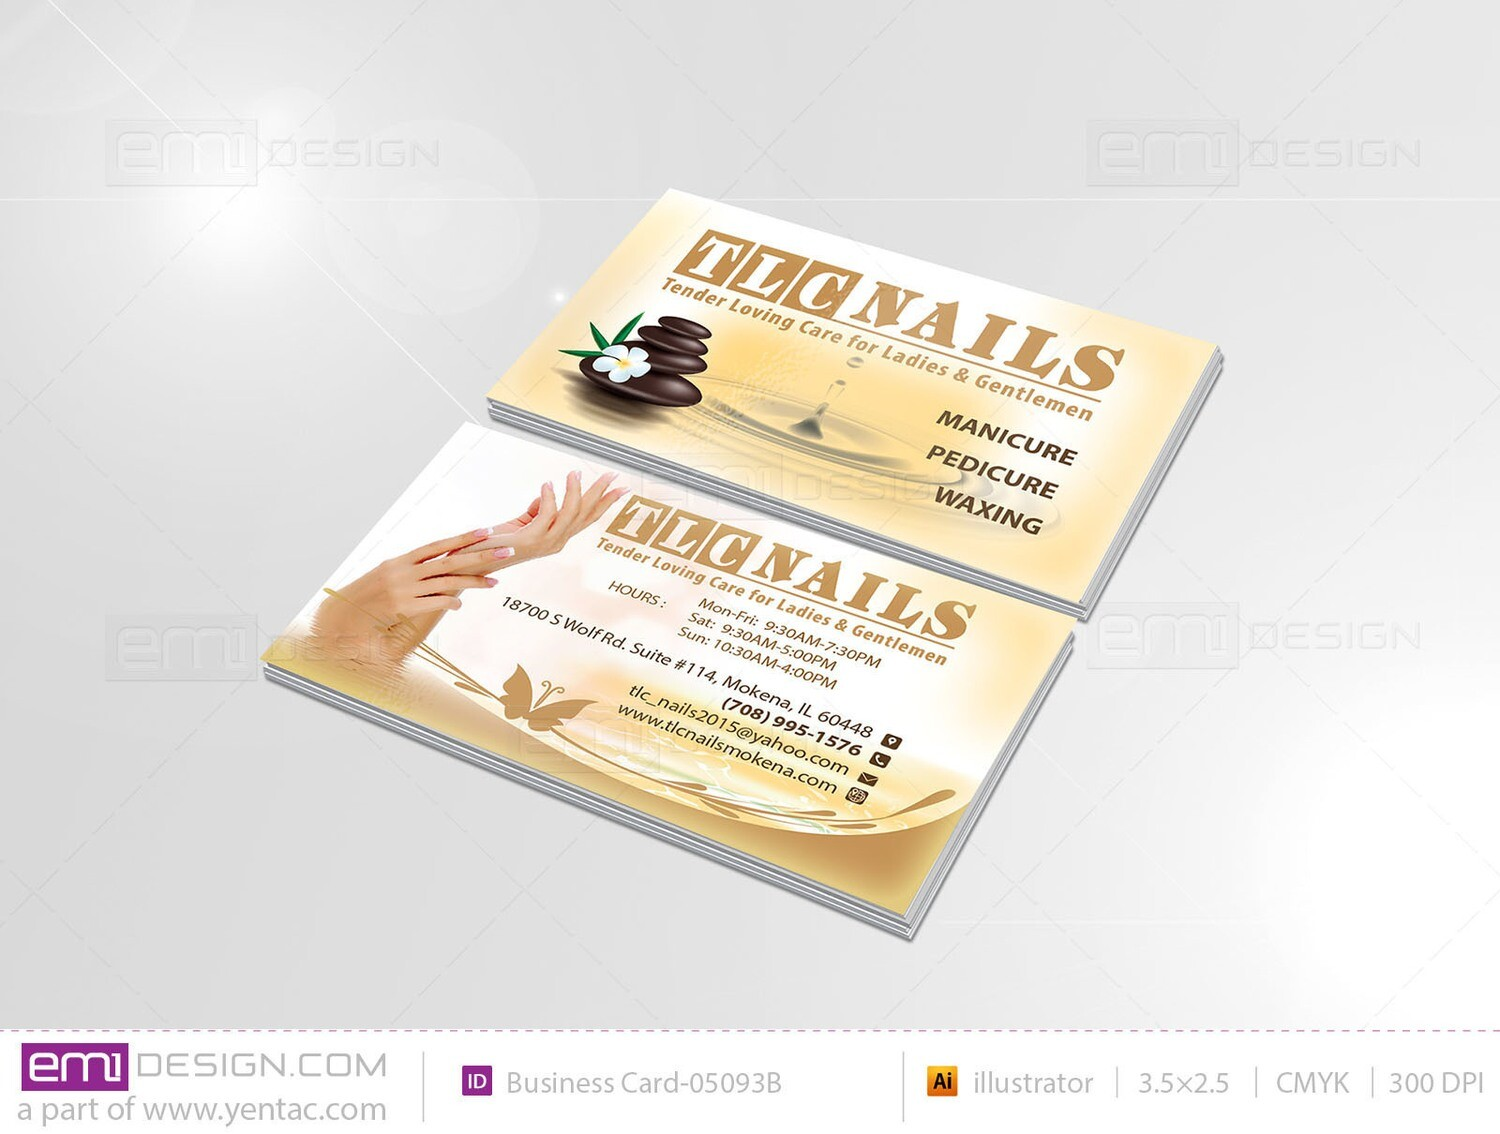 Business Card - Template BusCard-05093B